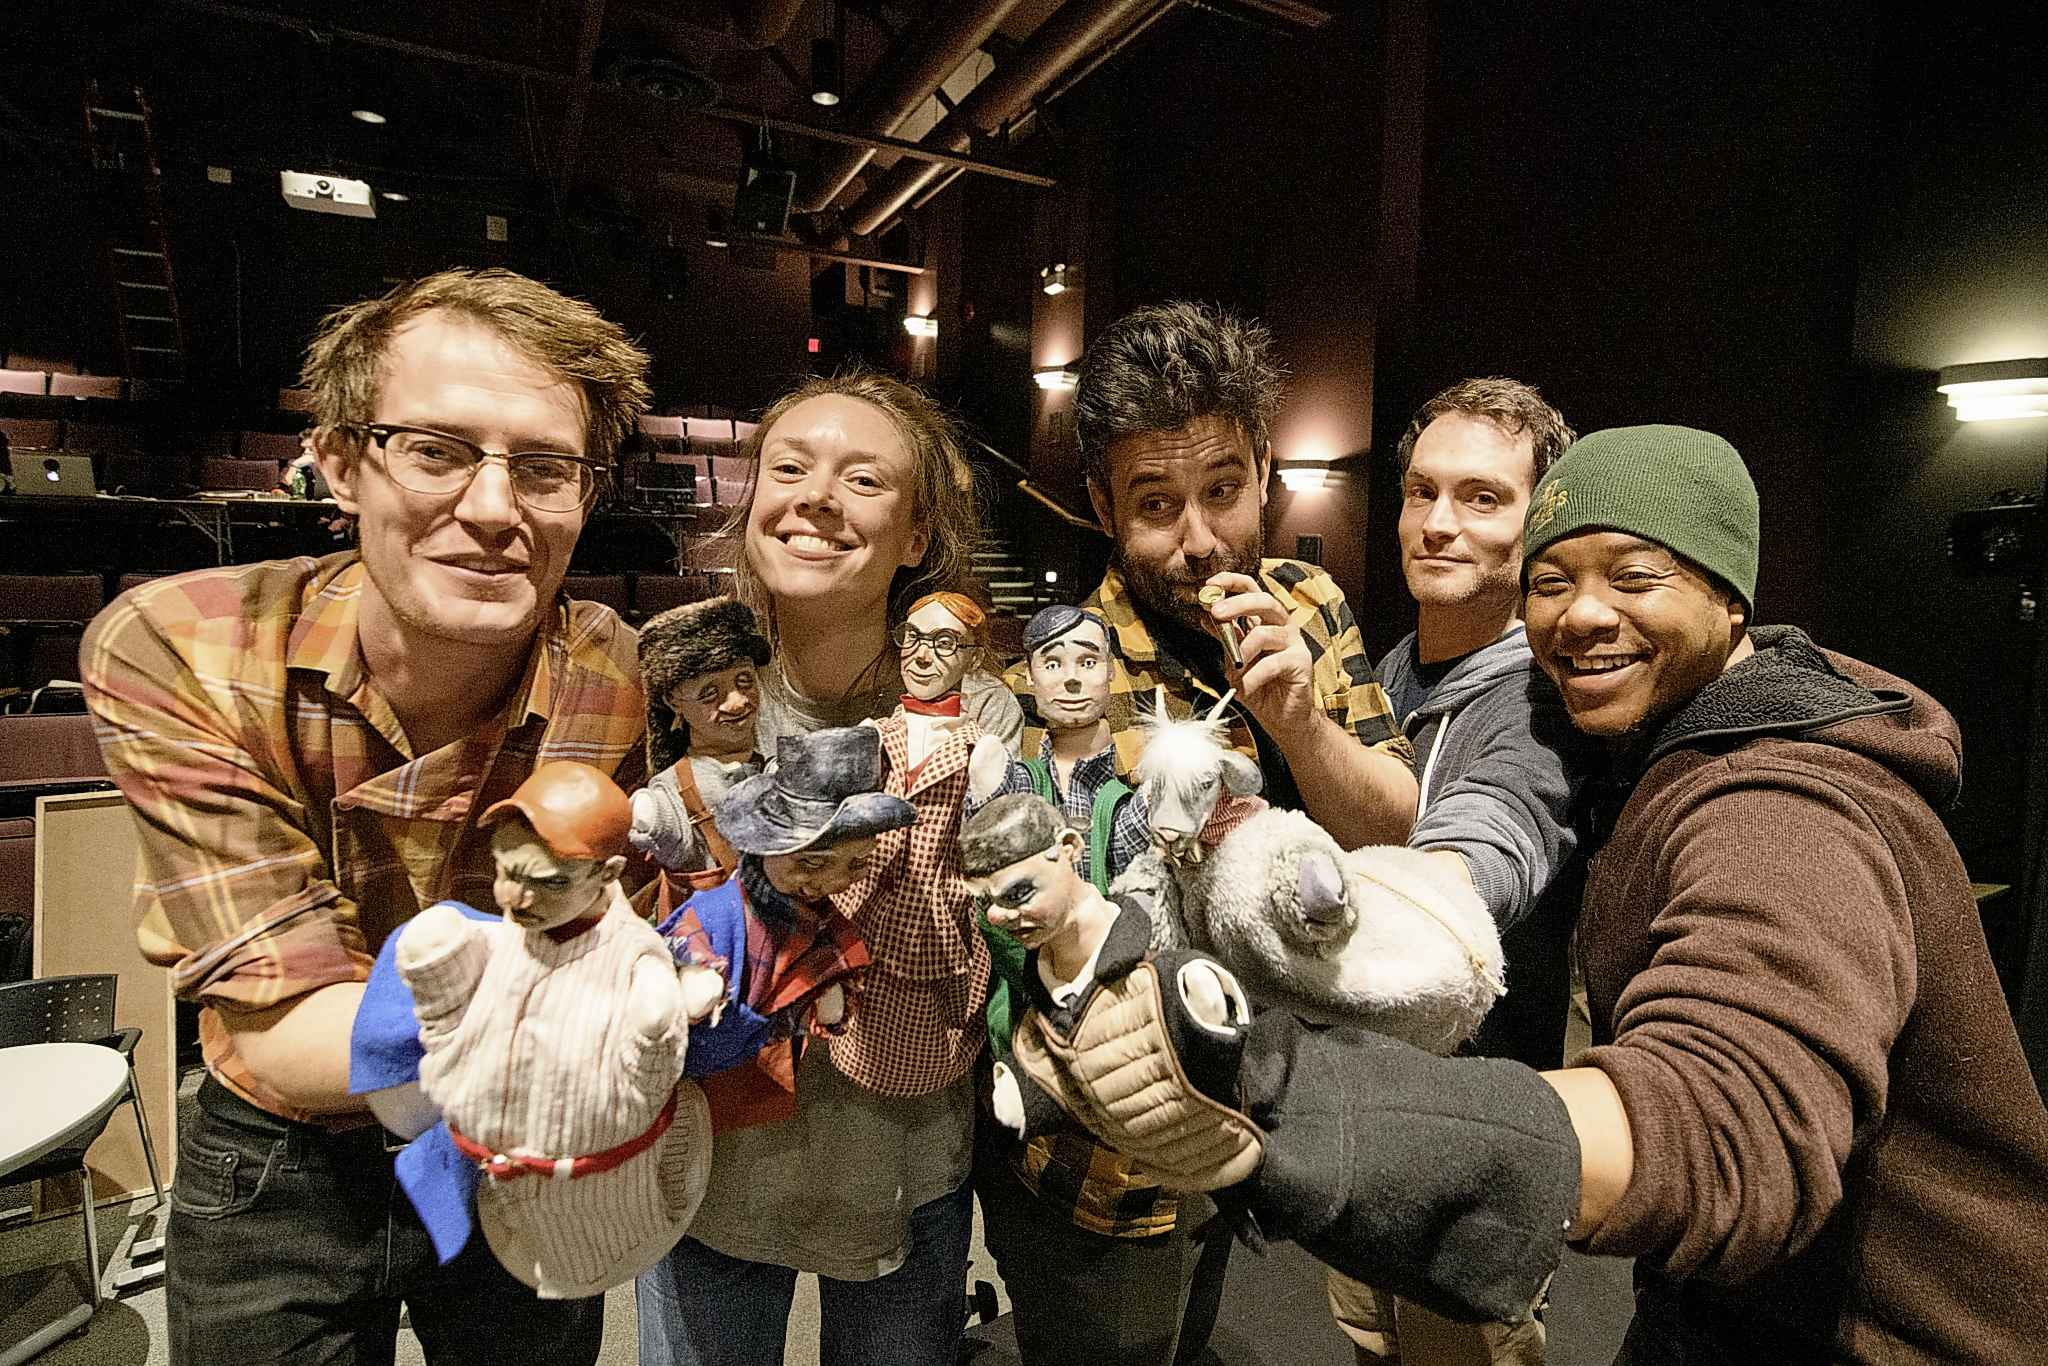 Toby Hughes, Katherine Cullen, James Smith, Jesse Nerenberg, and Ray Strachan with their puppets on set of The Golem's Mighty Swing Thursday afternoon at the Winnipeg Jewish Theatre. (Mike Sudoma / Winnipeg Free Press)